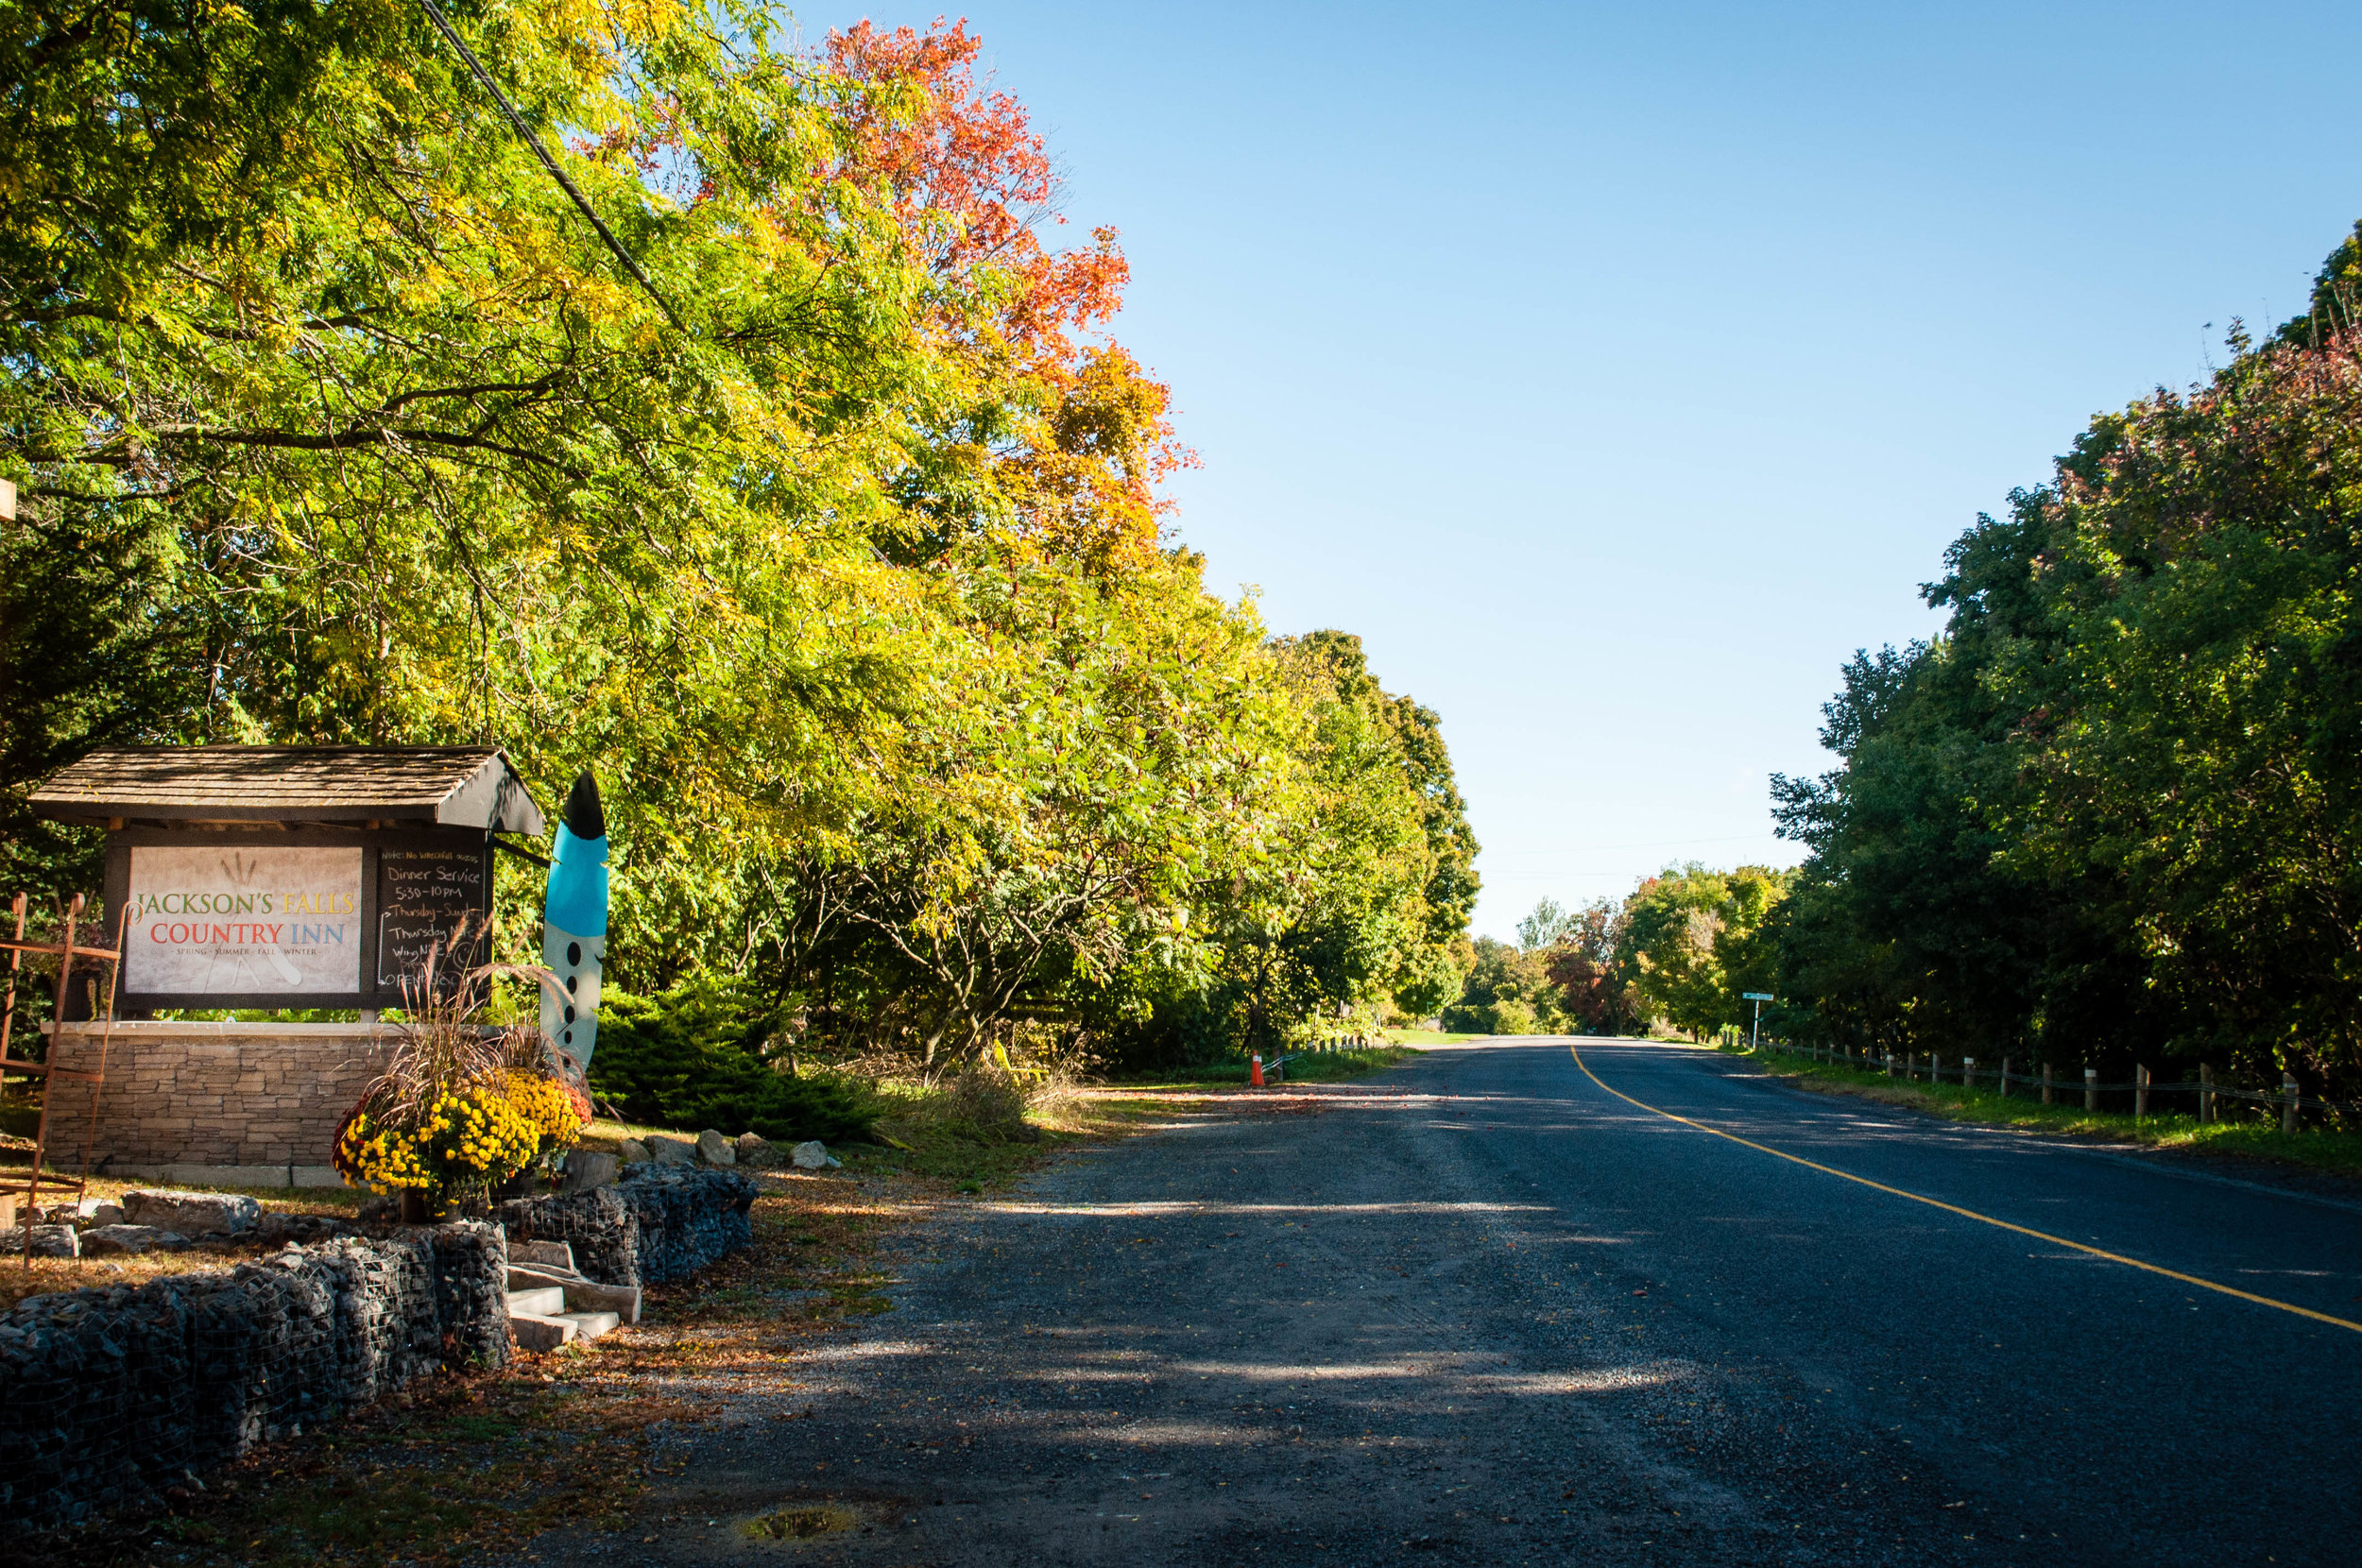 Fall colours on the road of Things to do in Prince Edward County